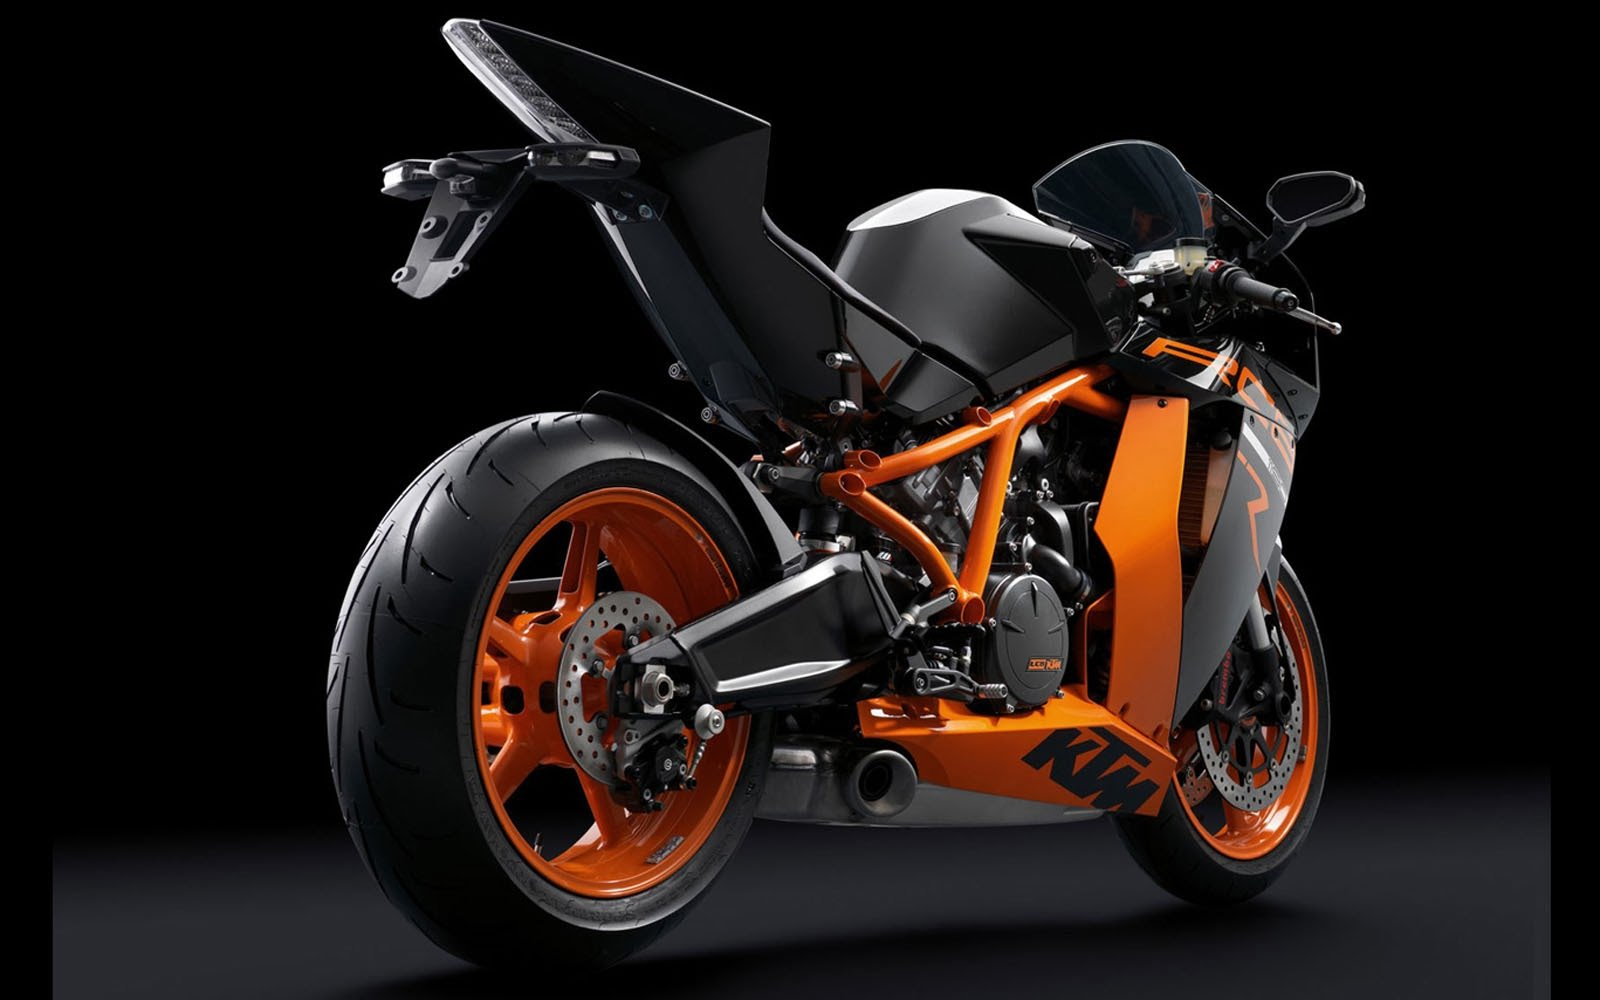 KTM RC8 Wallpapers KTM RC8 DesktopWallpapers KTM RC8 Desktop 1600x1000